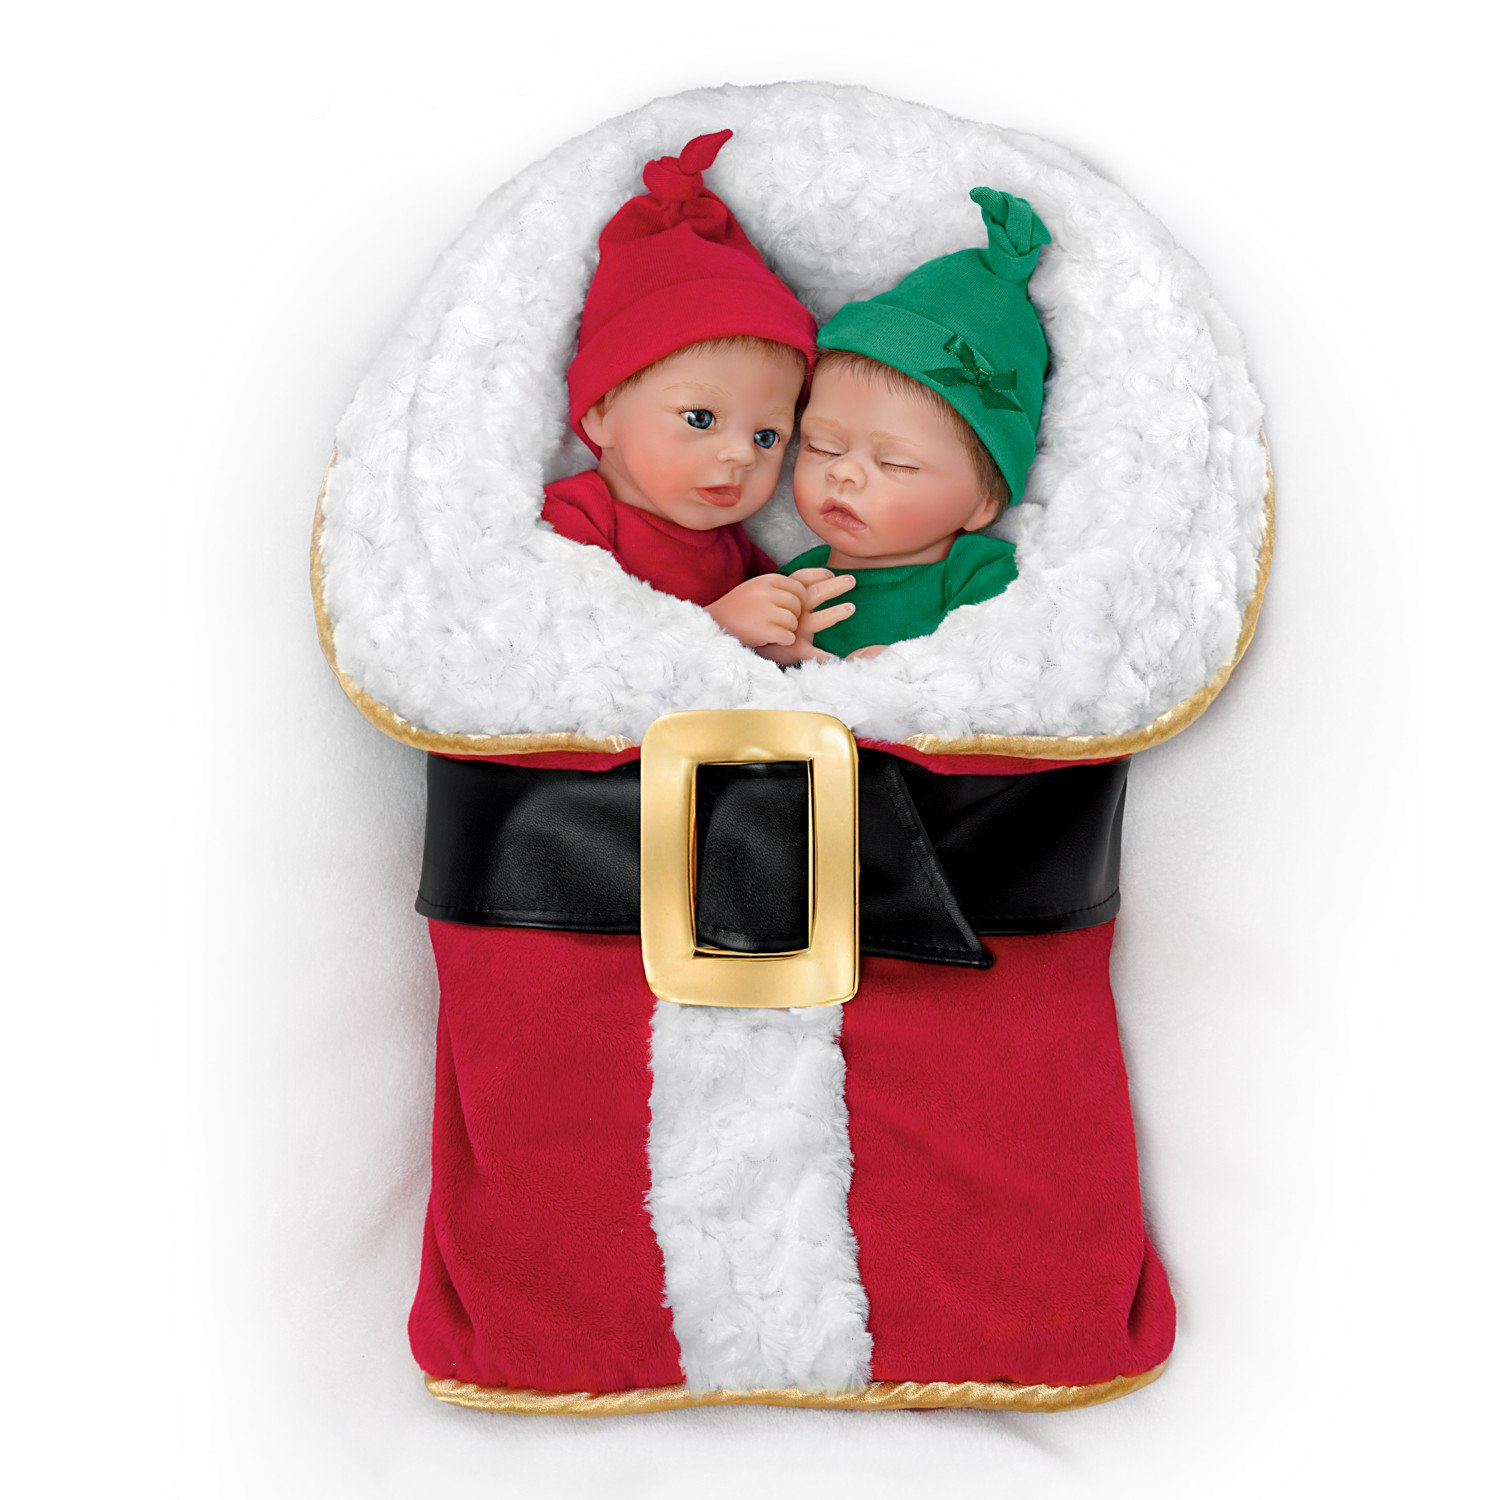 Donna Lee Twin Baby Doll Set With Santa Suit Shaped Bunting by The Ashton-Drake Galleries by The Ashton-Drake Galleries